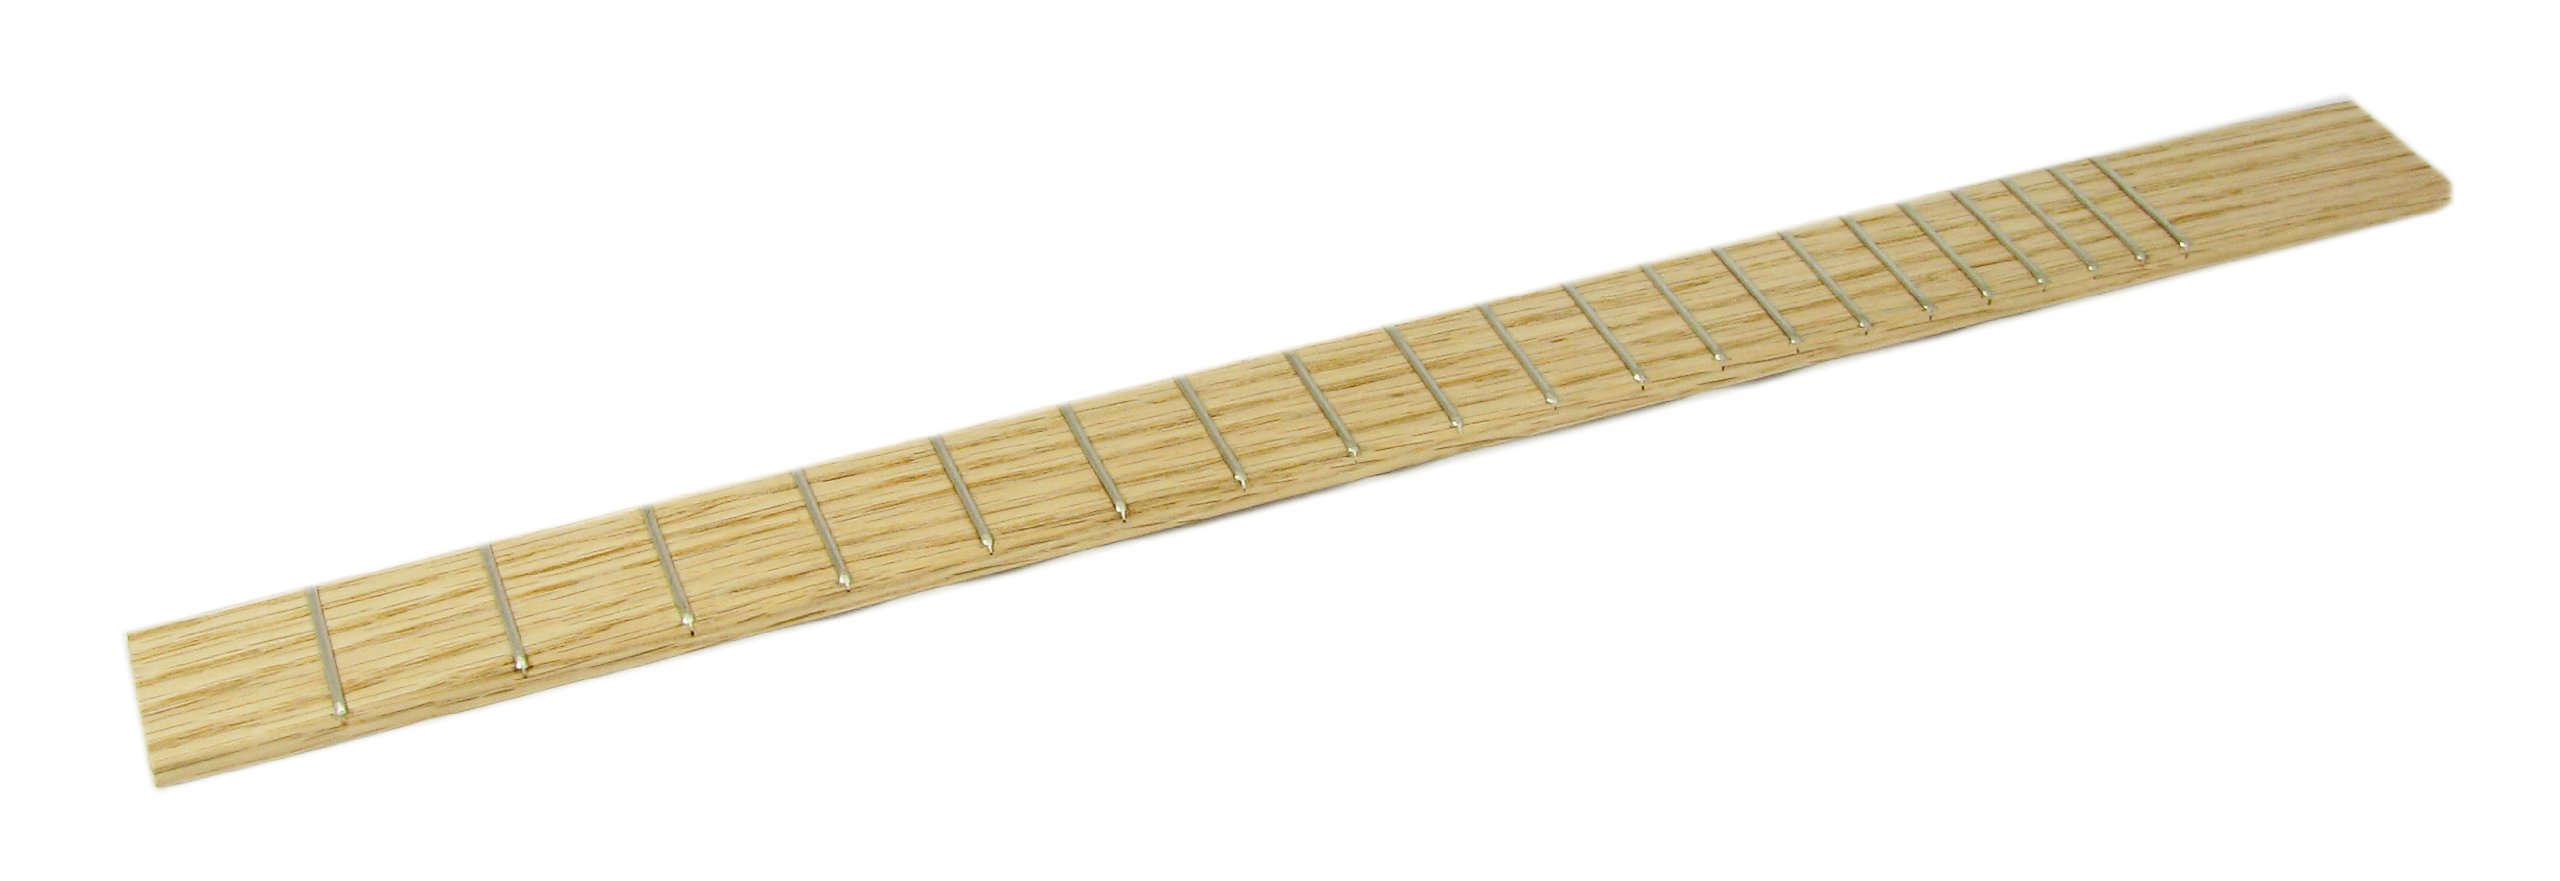 Cigar Box Guitar Fretboard - Fully Fretted Red Oak - Professional Quality, Made in the USA